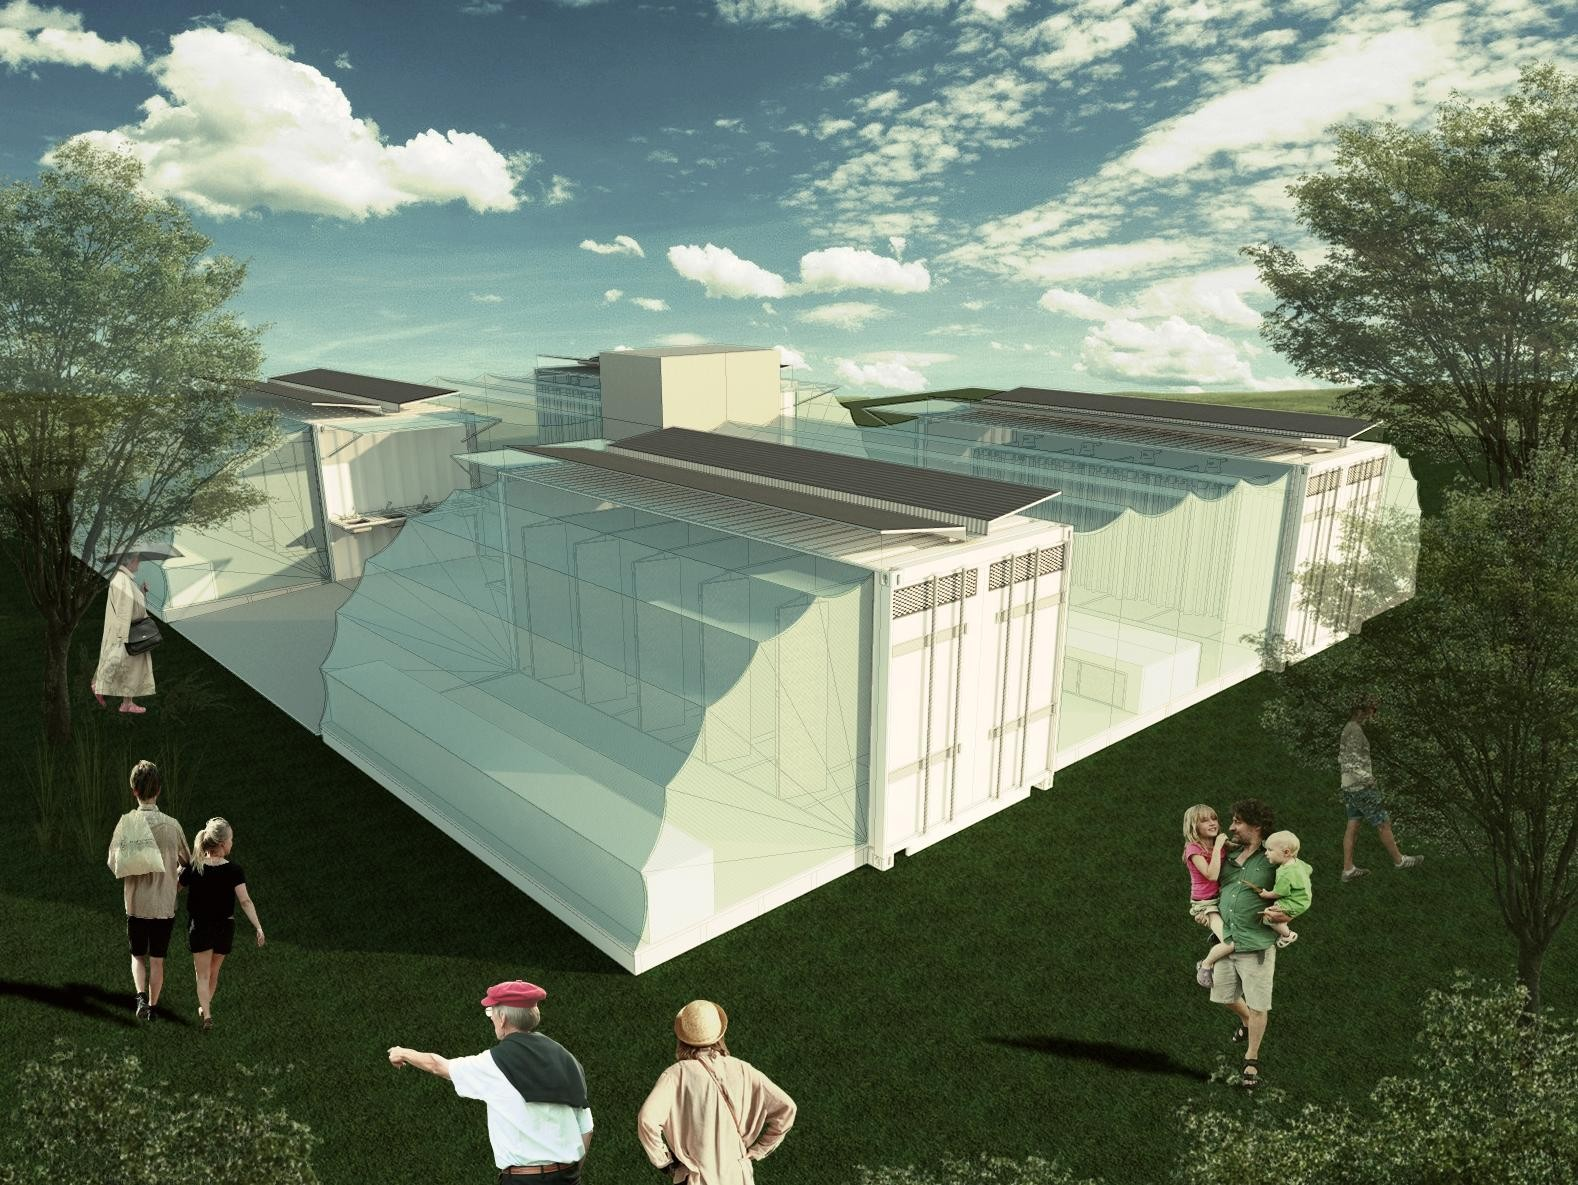 Sustainable Design-Build Projects from Seven Universities Around the World, The University of Sao Paulo's communal bathroom proposal for post-disaster relief. Image Courtesy of Pillars of Sustainable Education